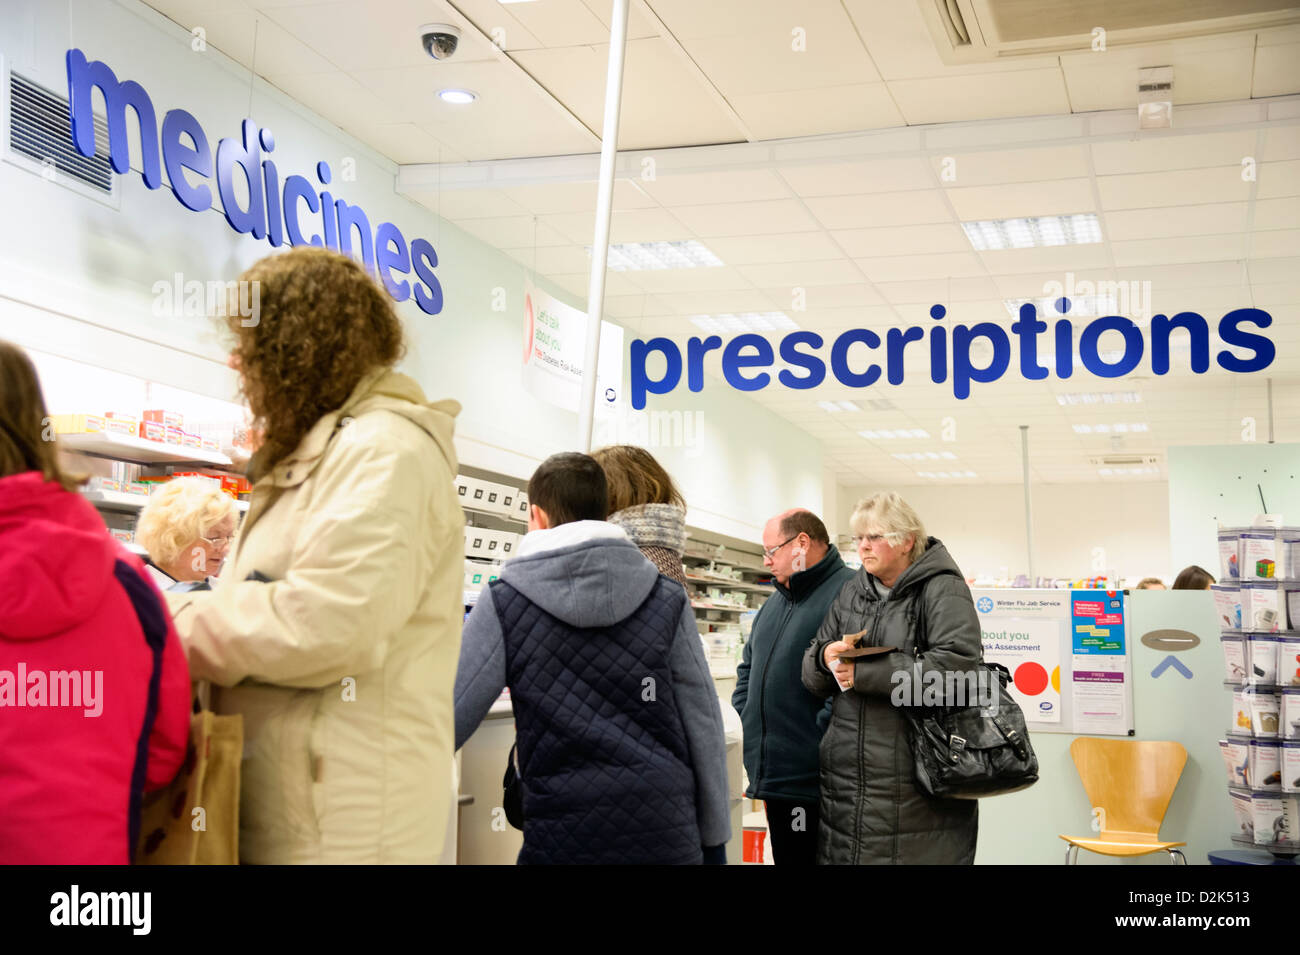 Prescriptions counter inside a Boots shop in Cwmbran, South Wales, UK. People queuing for over the counter medicines. - Stock Image